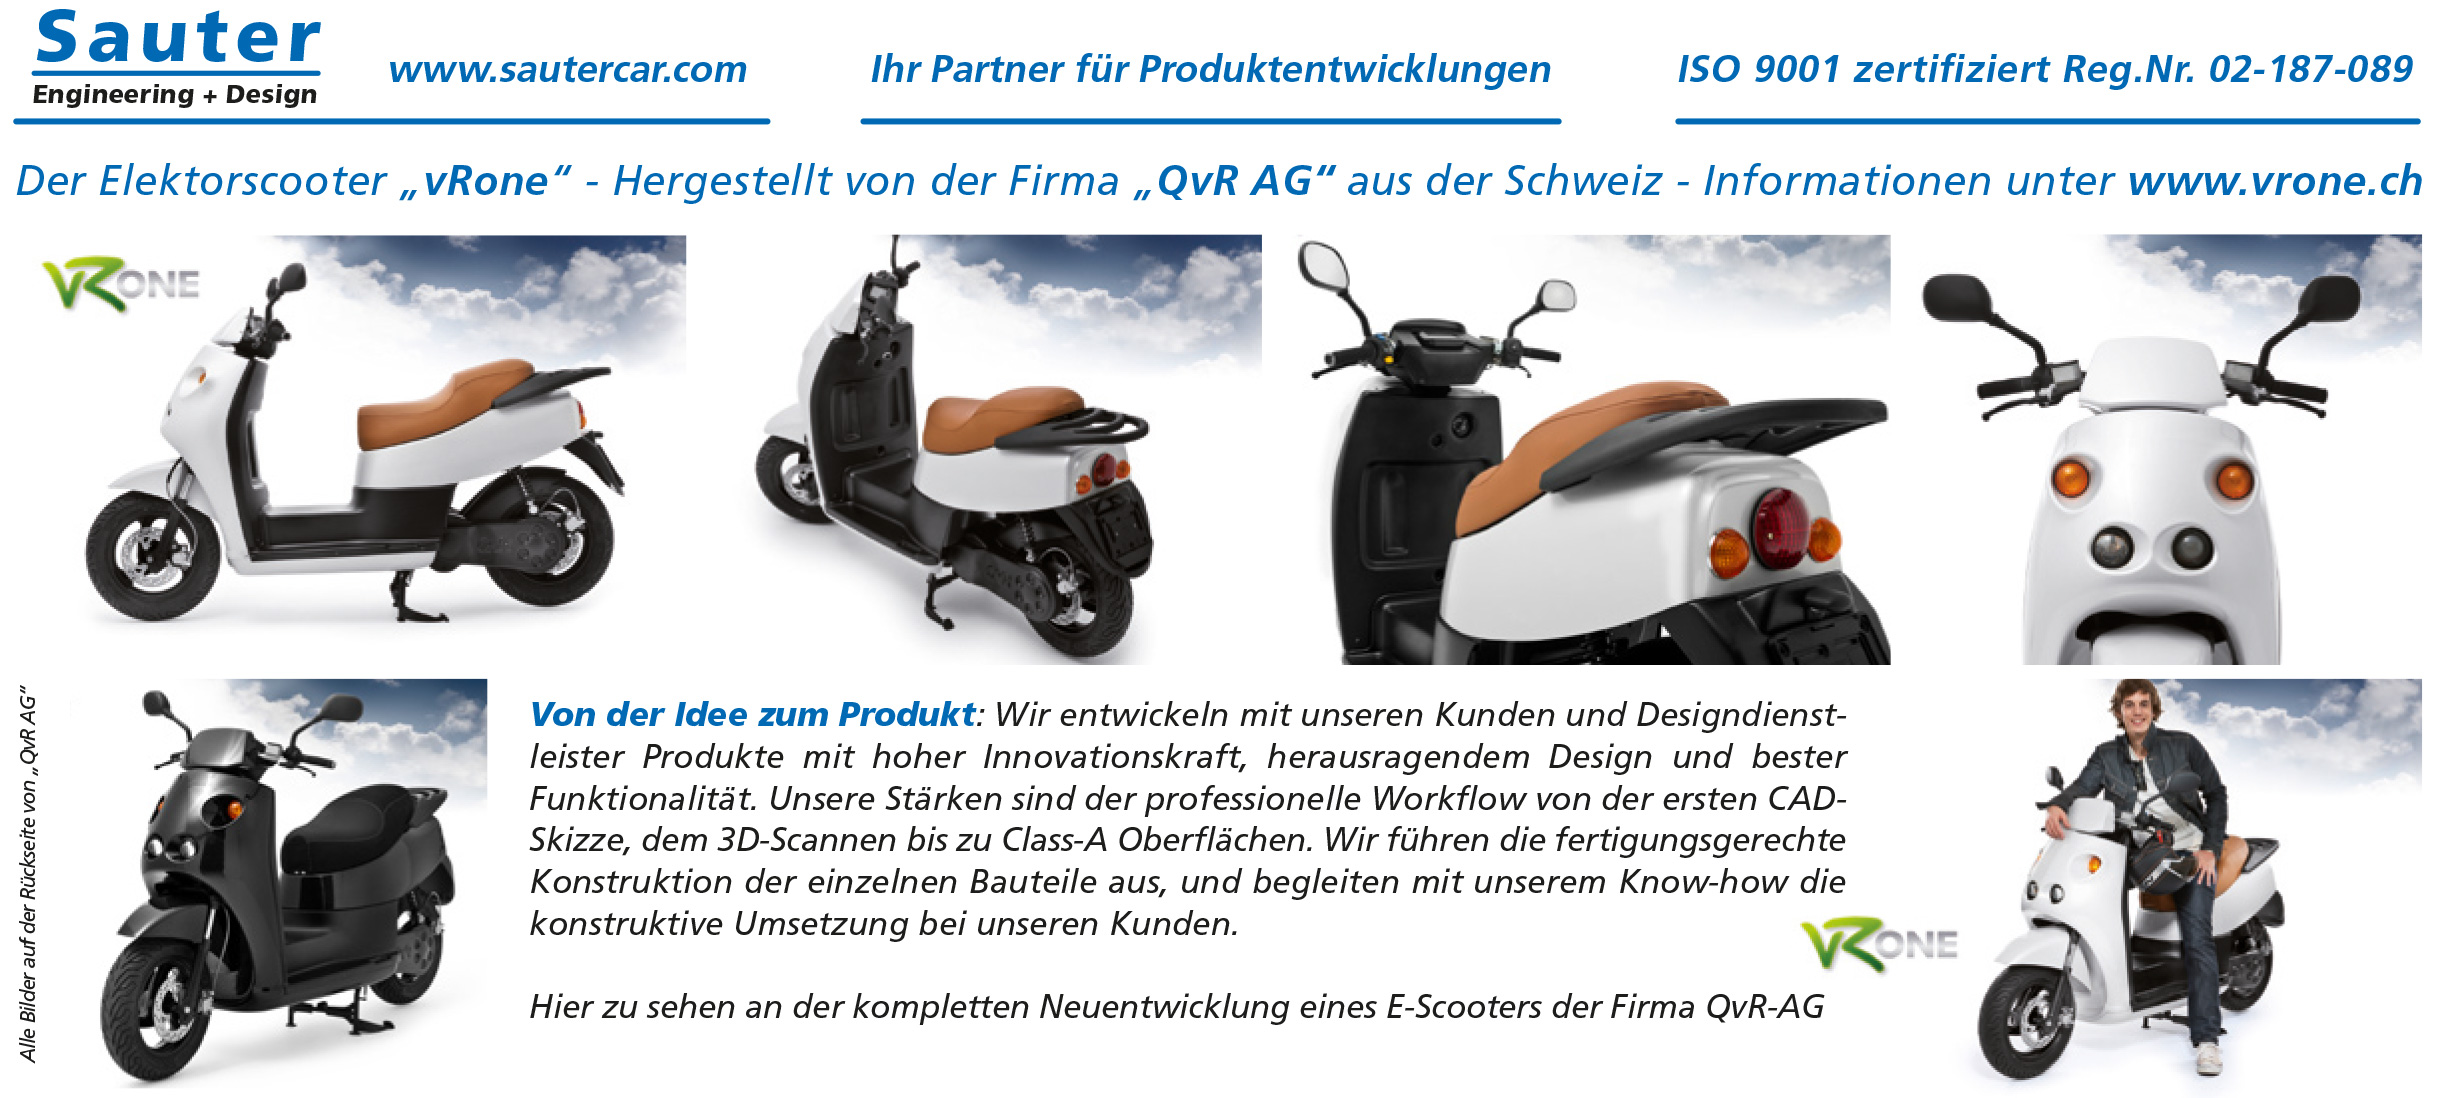 Beispielprojekt-QVR-vRone-Sauter-Engineering-Design-2